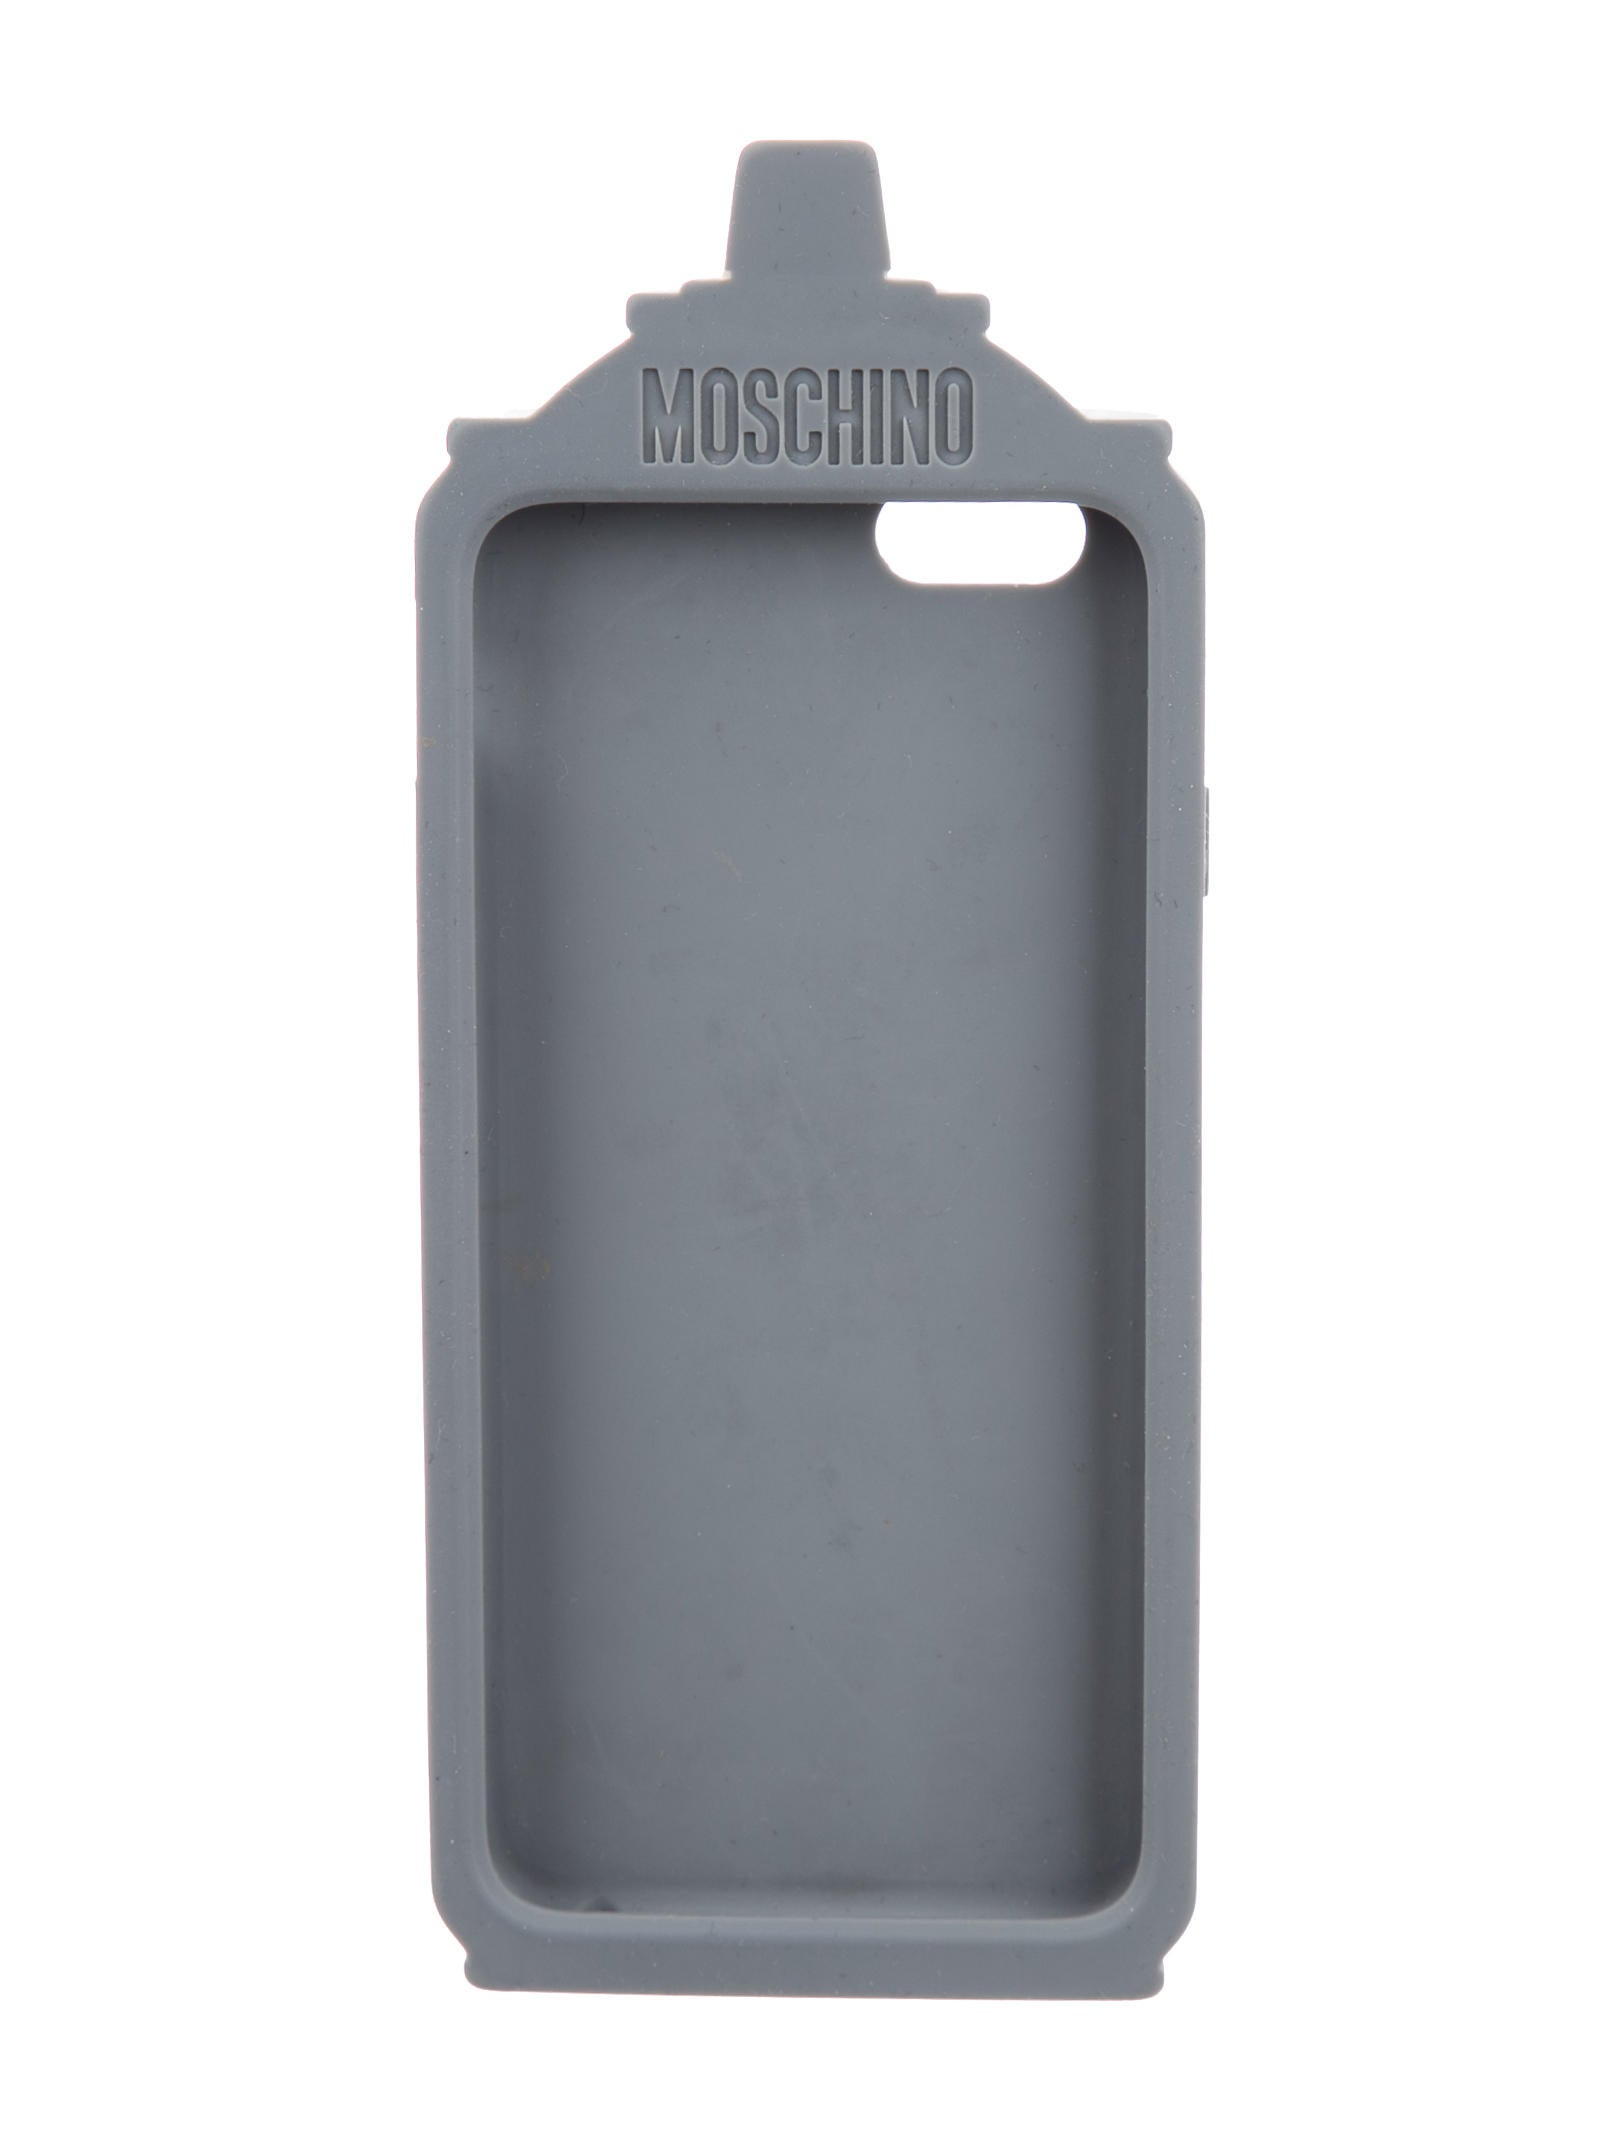 Moschino spray paint iphone 6 case accessories for Spray paint iphone case